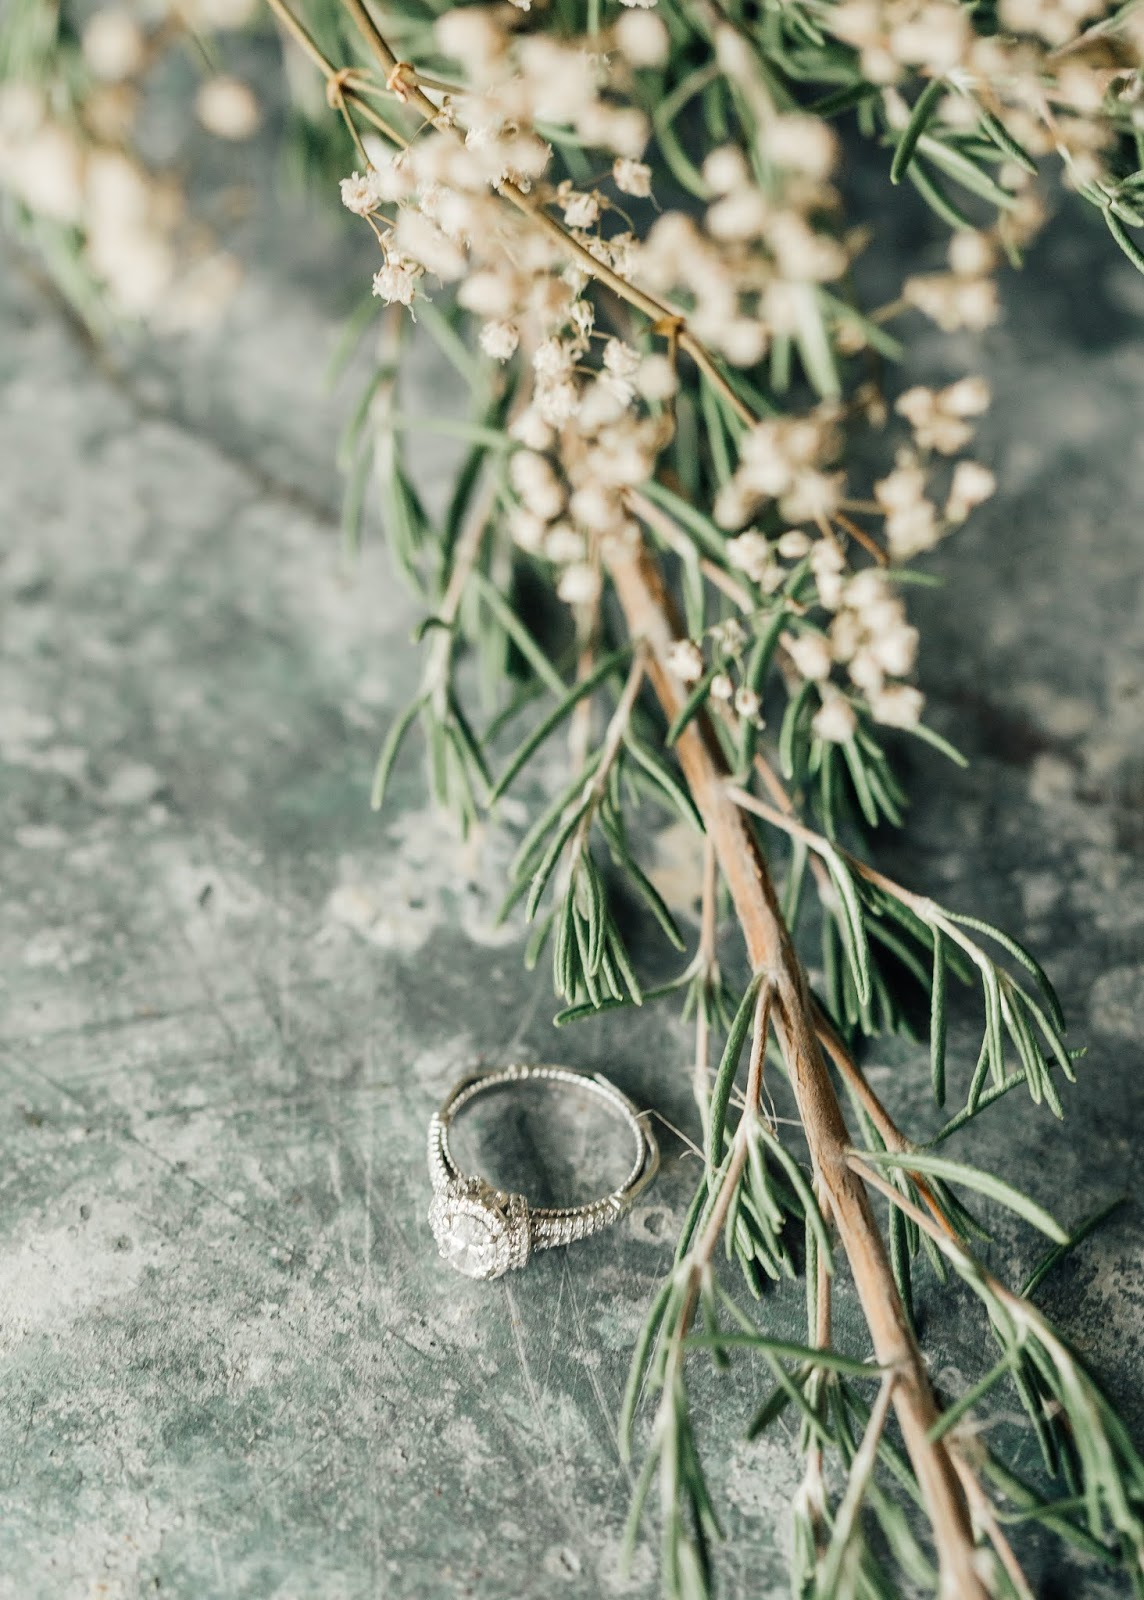 Rustic Engagement Ring-Farm Proposal Photos-Something Minted Photography